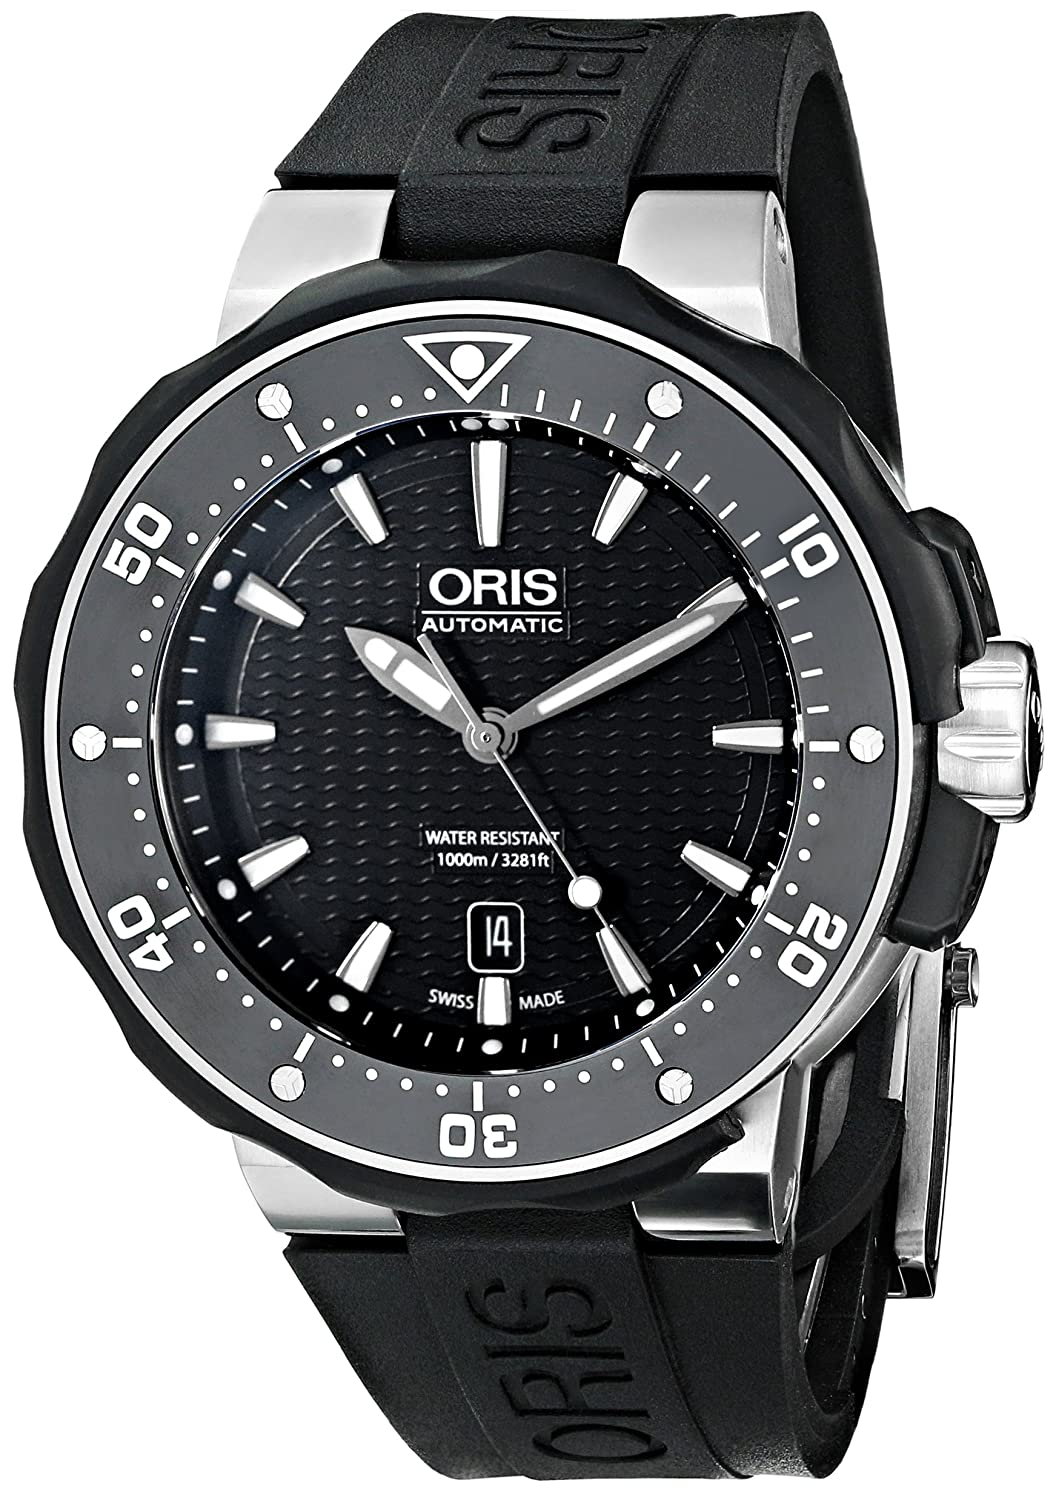 watches professional carl thumb edition oris main on limited hands brashear